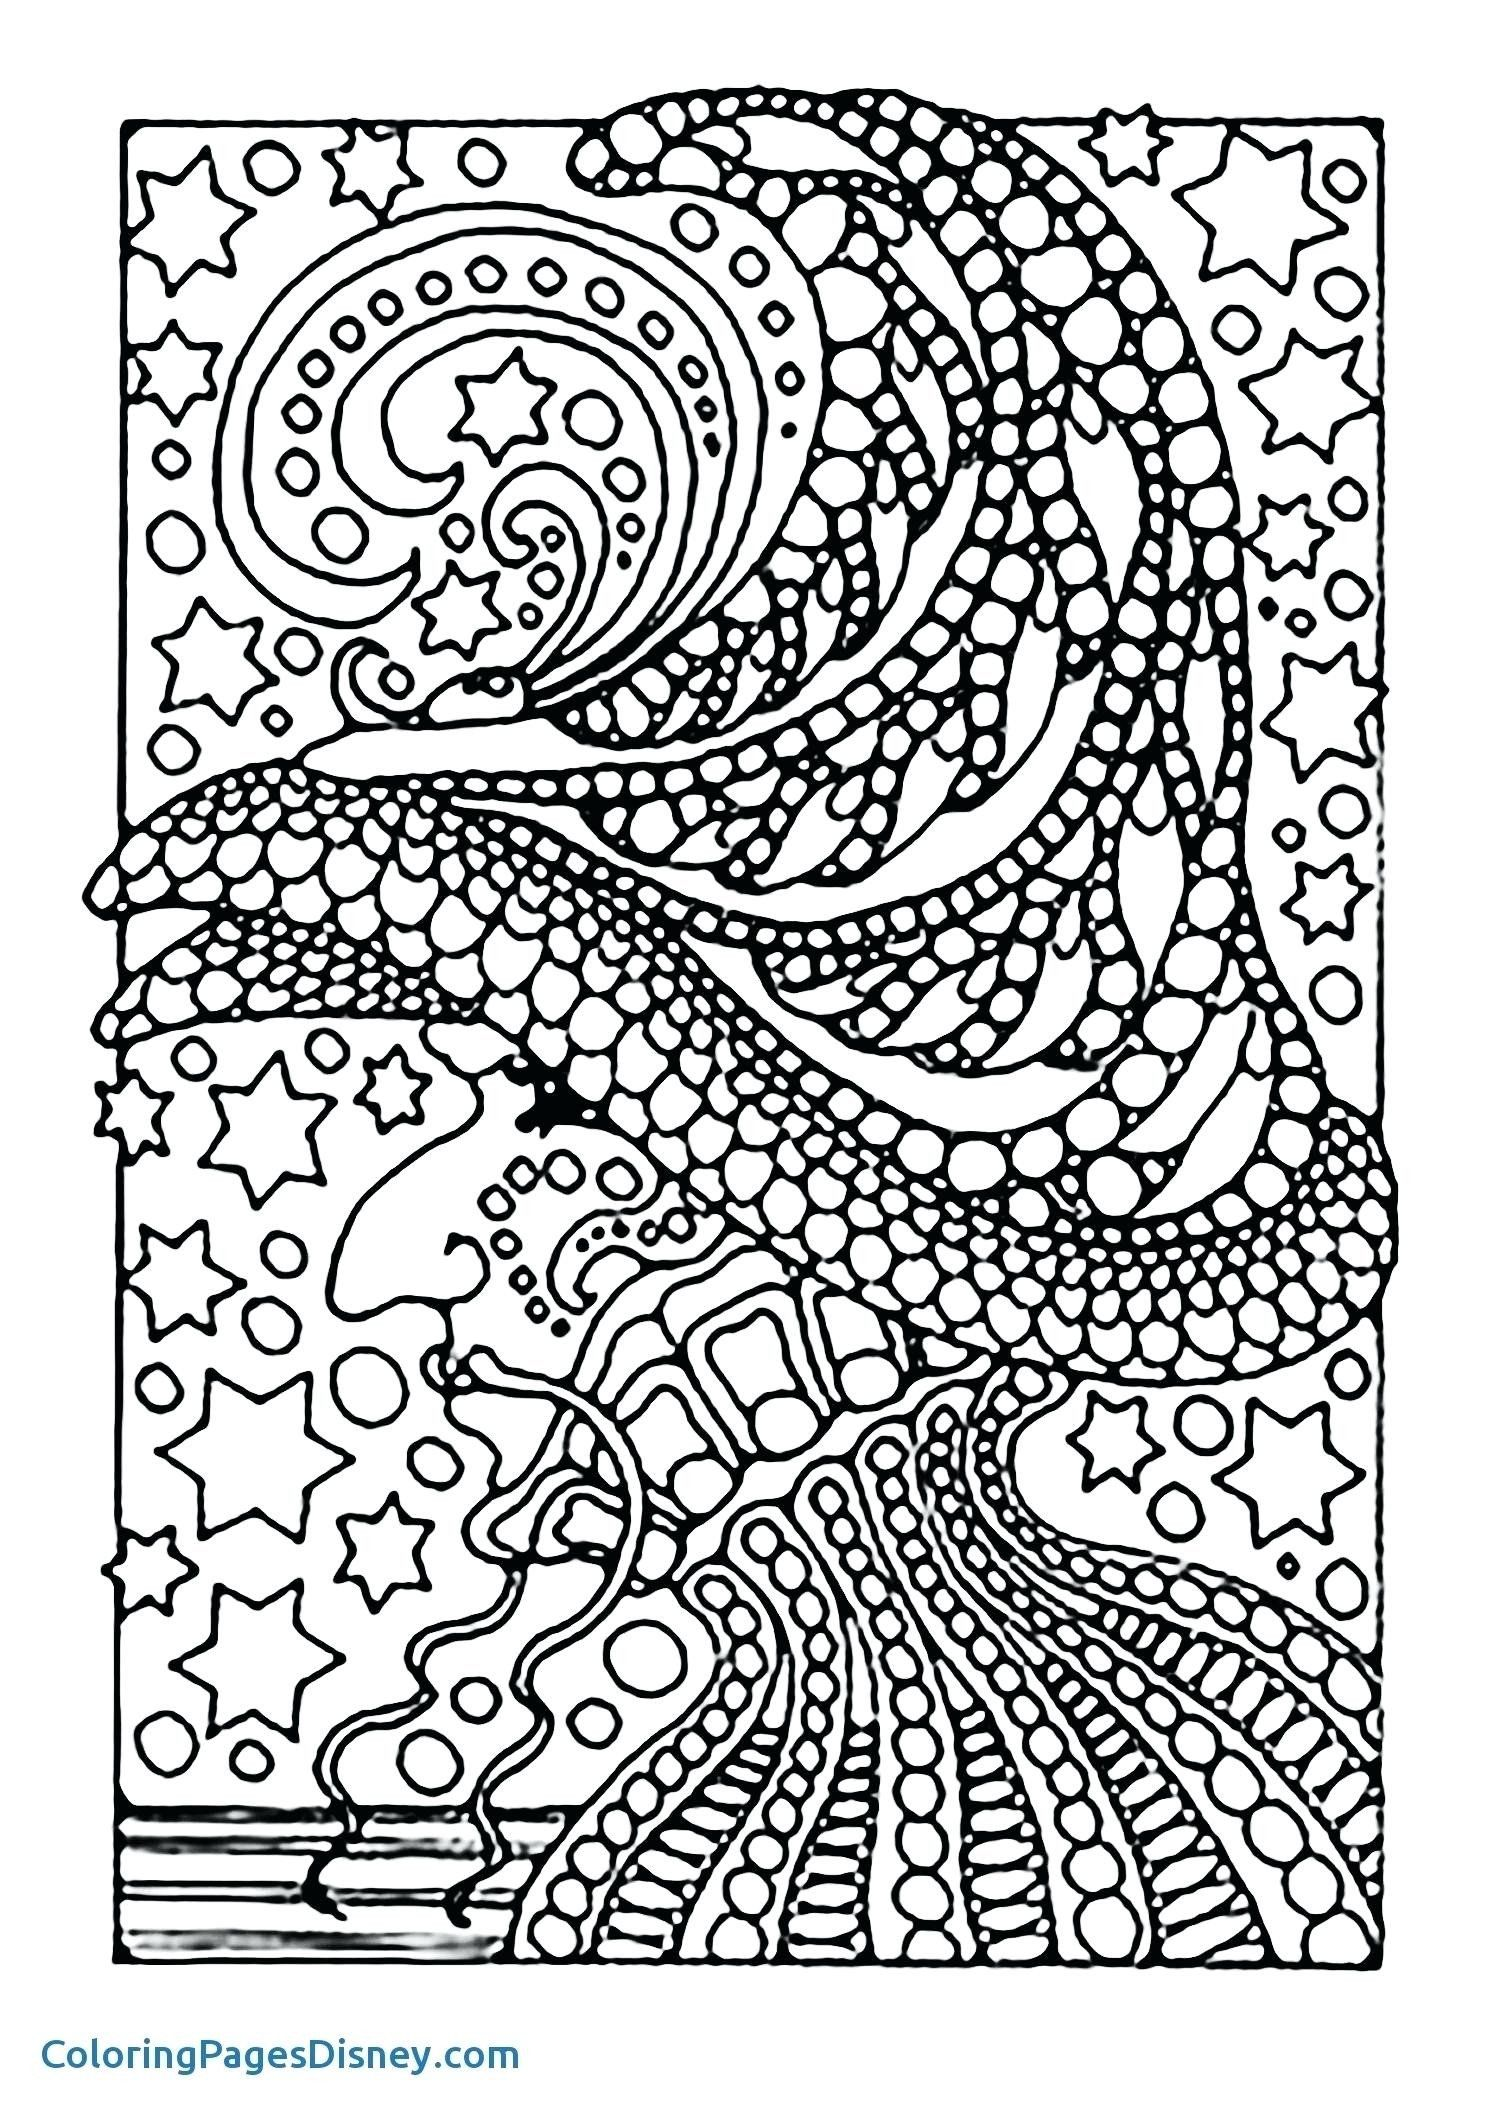 Mandala Online Coloring Pages Coloring Page Hindu Mandala Coloring Page Free Printable Witch Coloring Pages Coloring Pages Inspirational Heart Coloring Pages